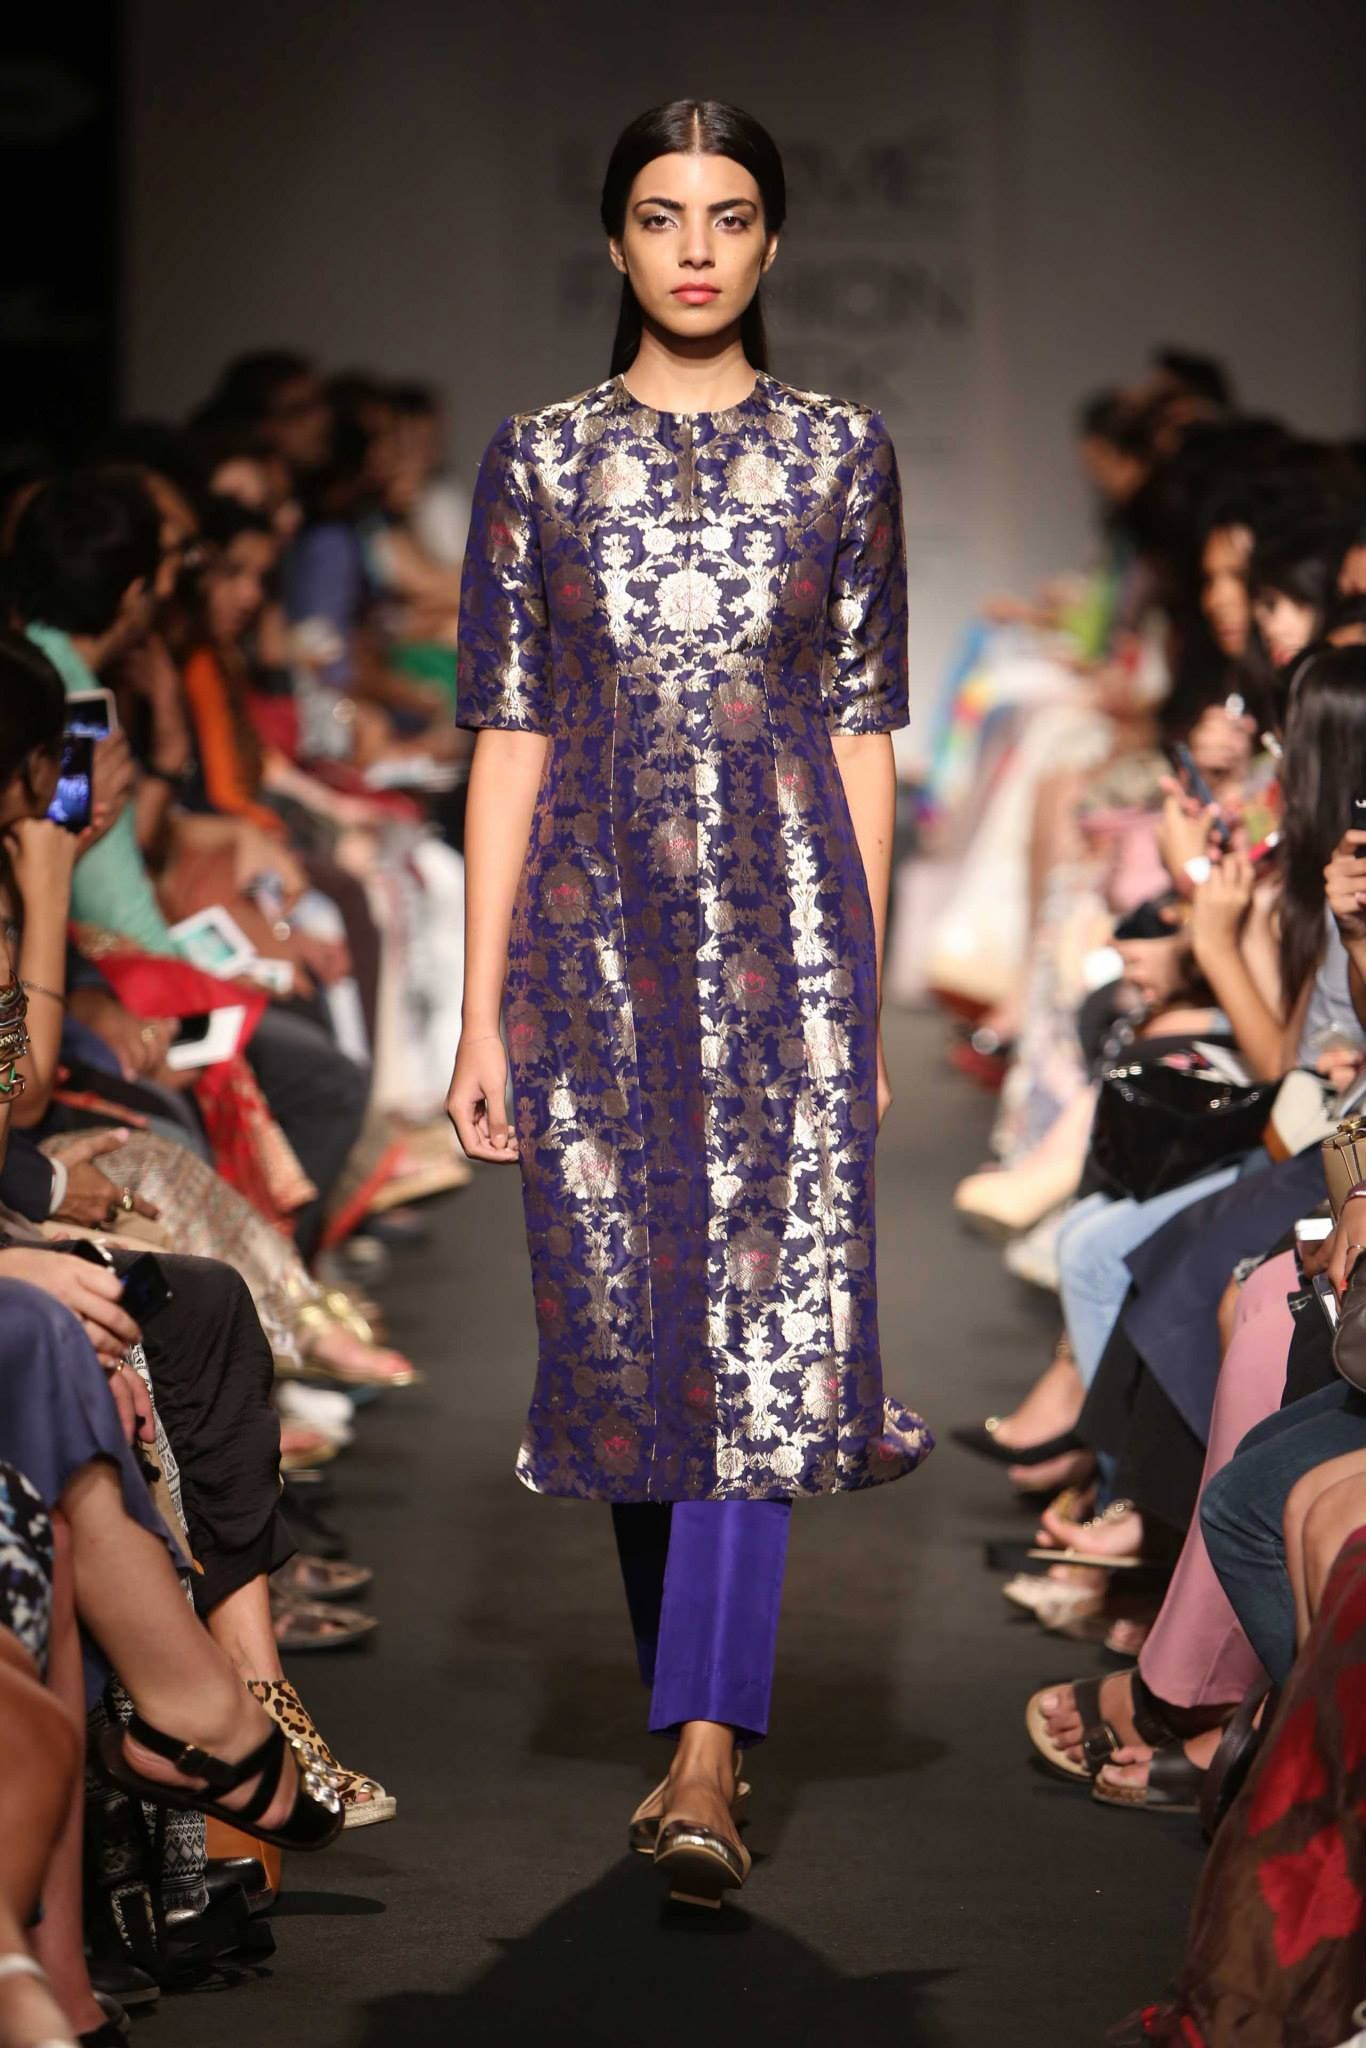 Sanjay Garg Blue Embroidered Suit At Lakme Fashion Week 2014 Fashion Lakme Fashion Week Indian Fashion